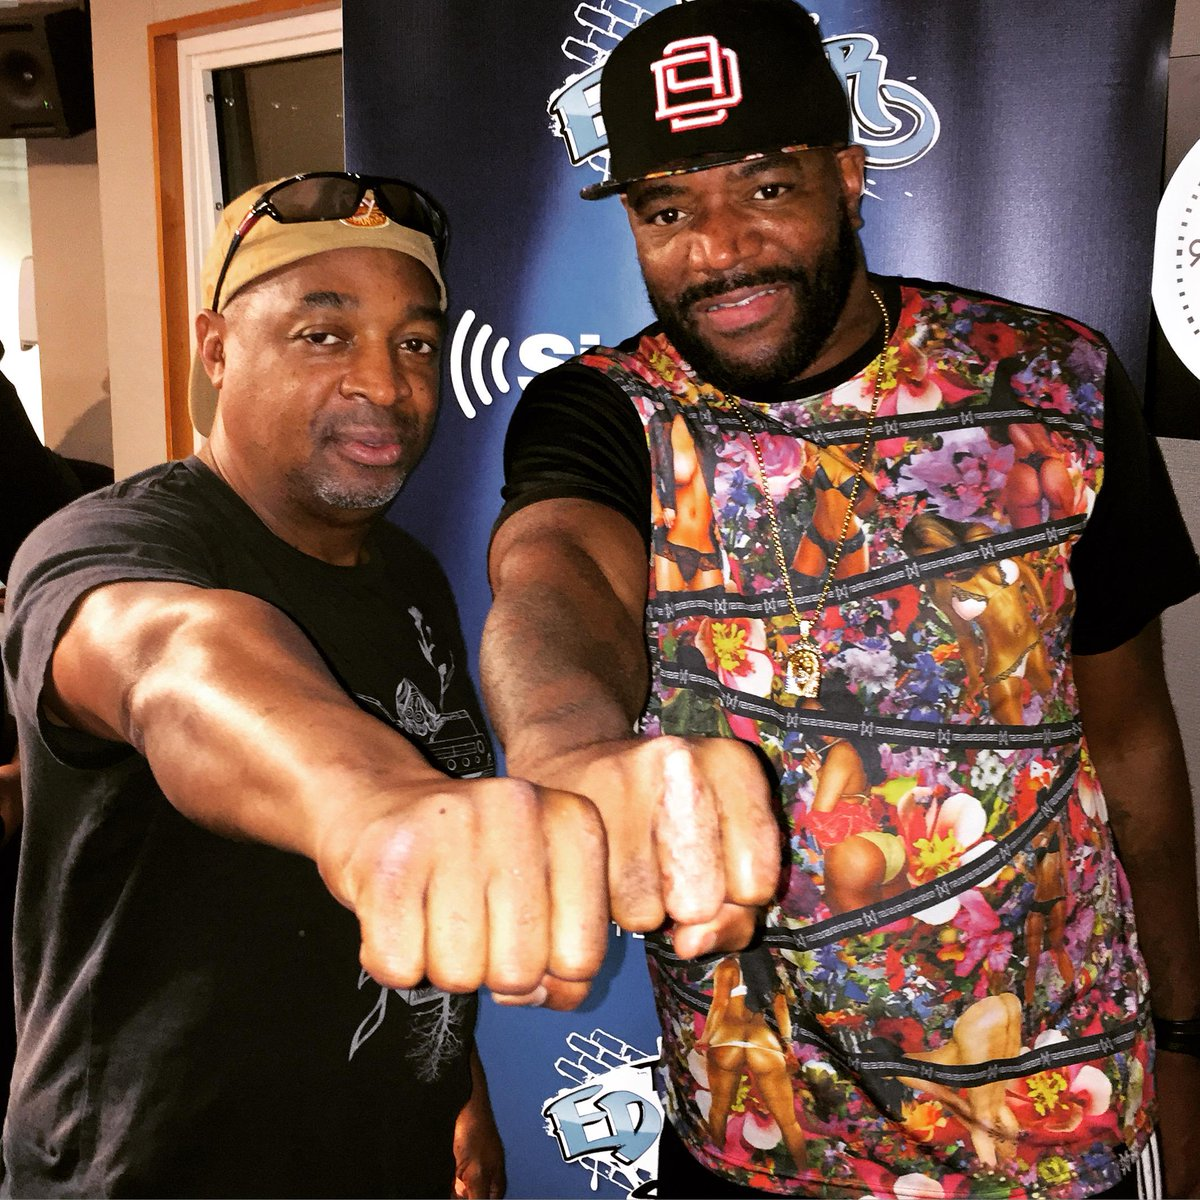 last friday night...@MrChuckD + @MrEdLover chopping it up about the new @PublicEnemyFTP album on @siriusxm. CLASSIC. http://t.co/lH7IJF6Swf